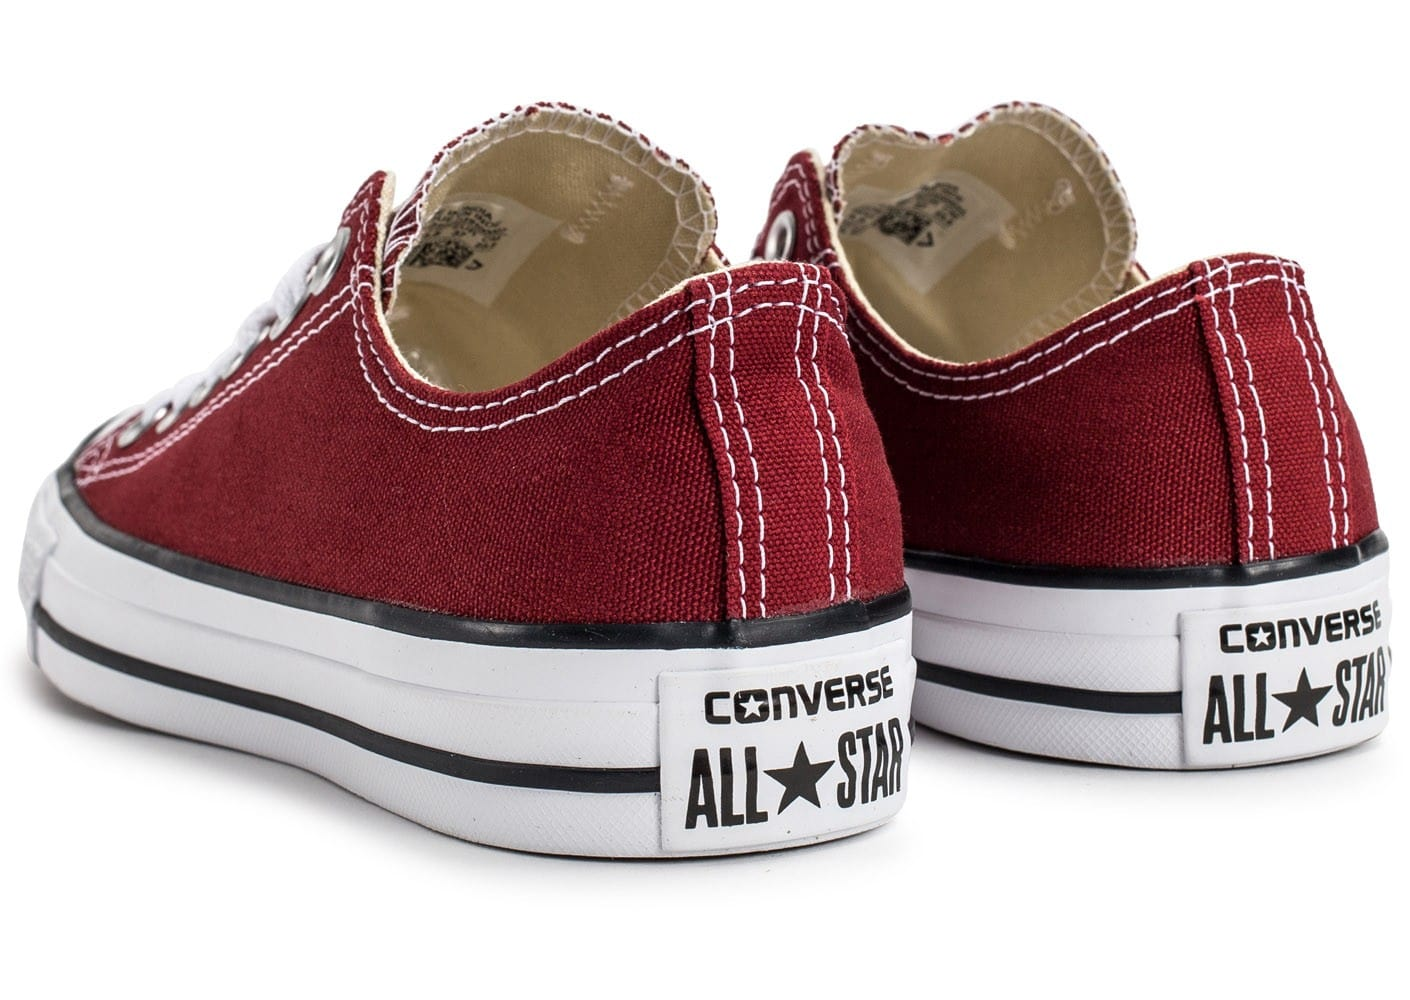 converse chuck taylor all star low bordeaux chaussures femme chausport. Black Bedroom Furniture Sets. Home Design Ideas